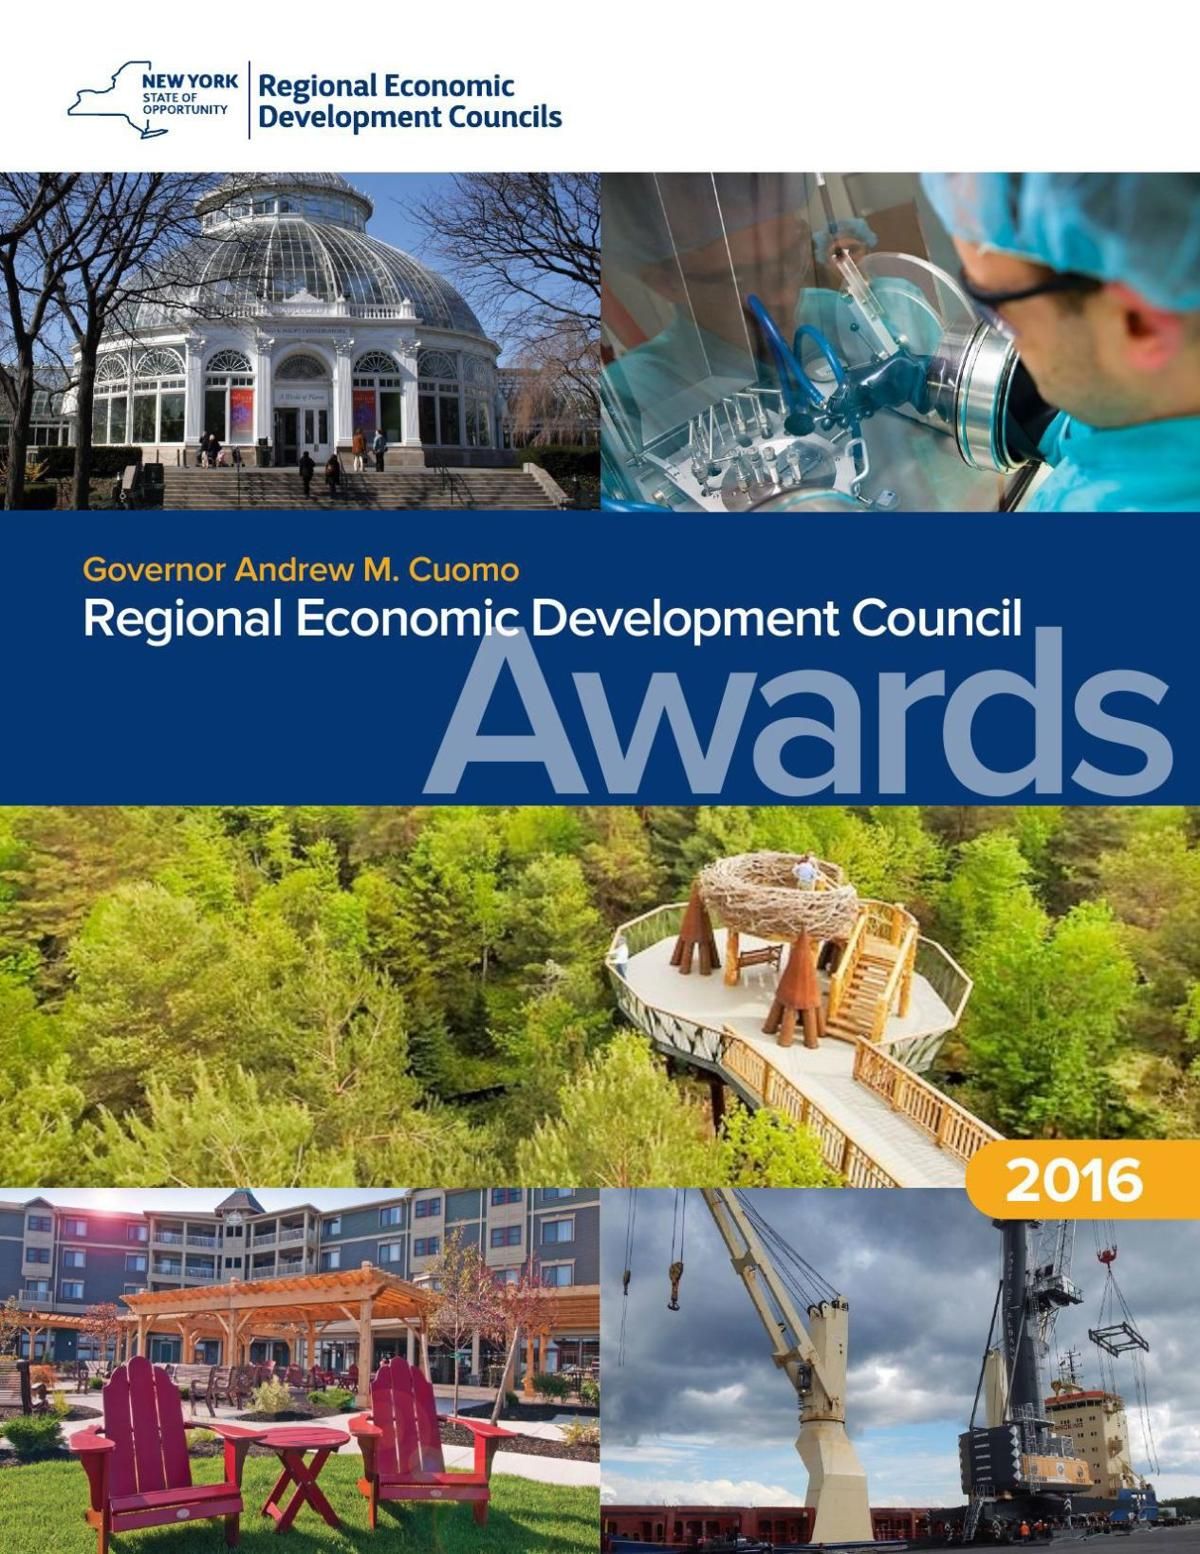 Regional Economic Development Council Awards Booklet 2016